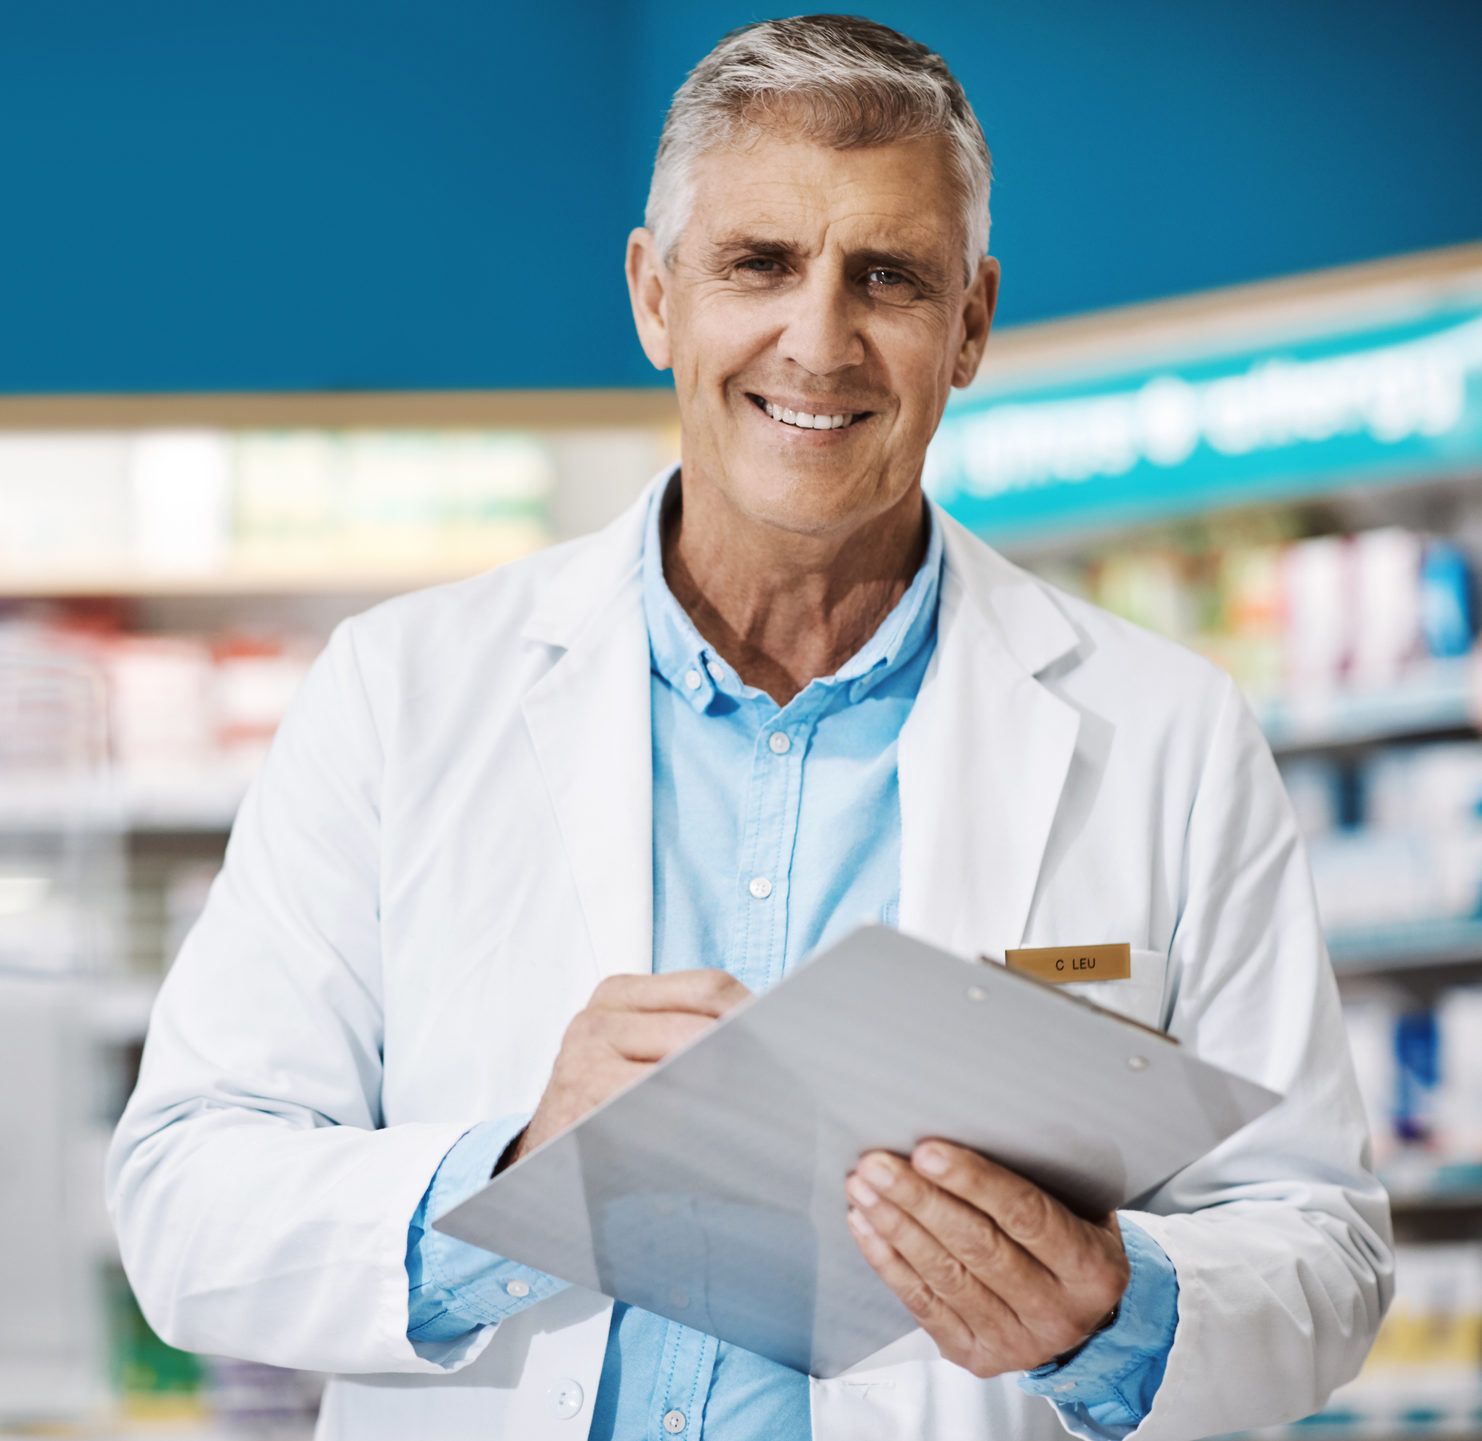 male pharmacist writing on a clipboard in a drugstore